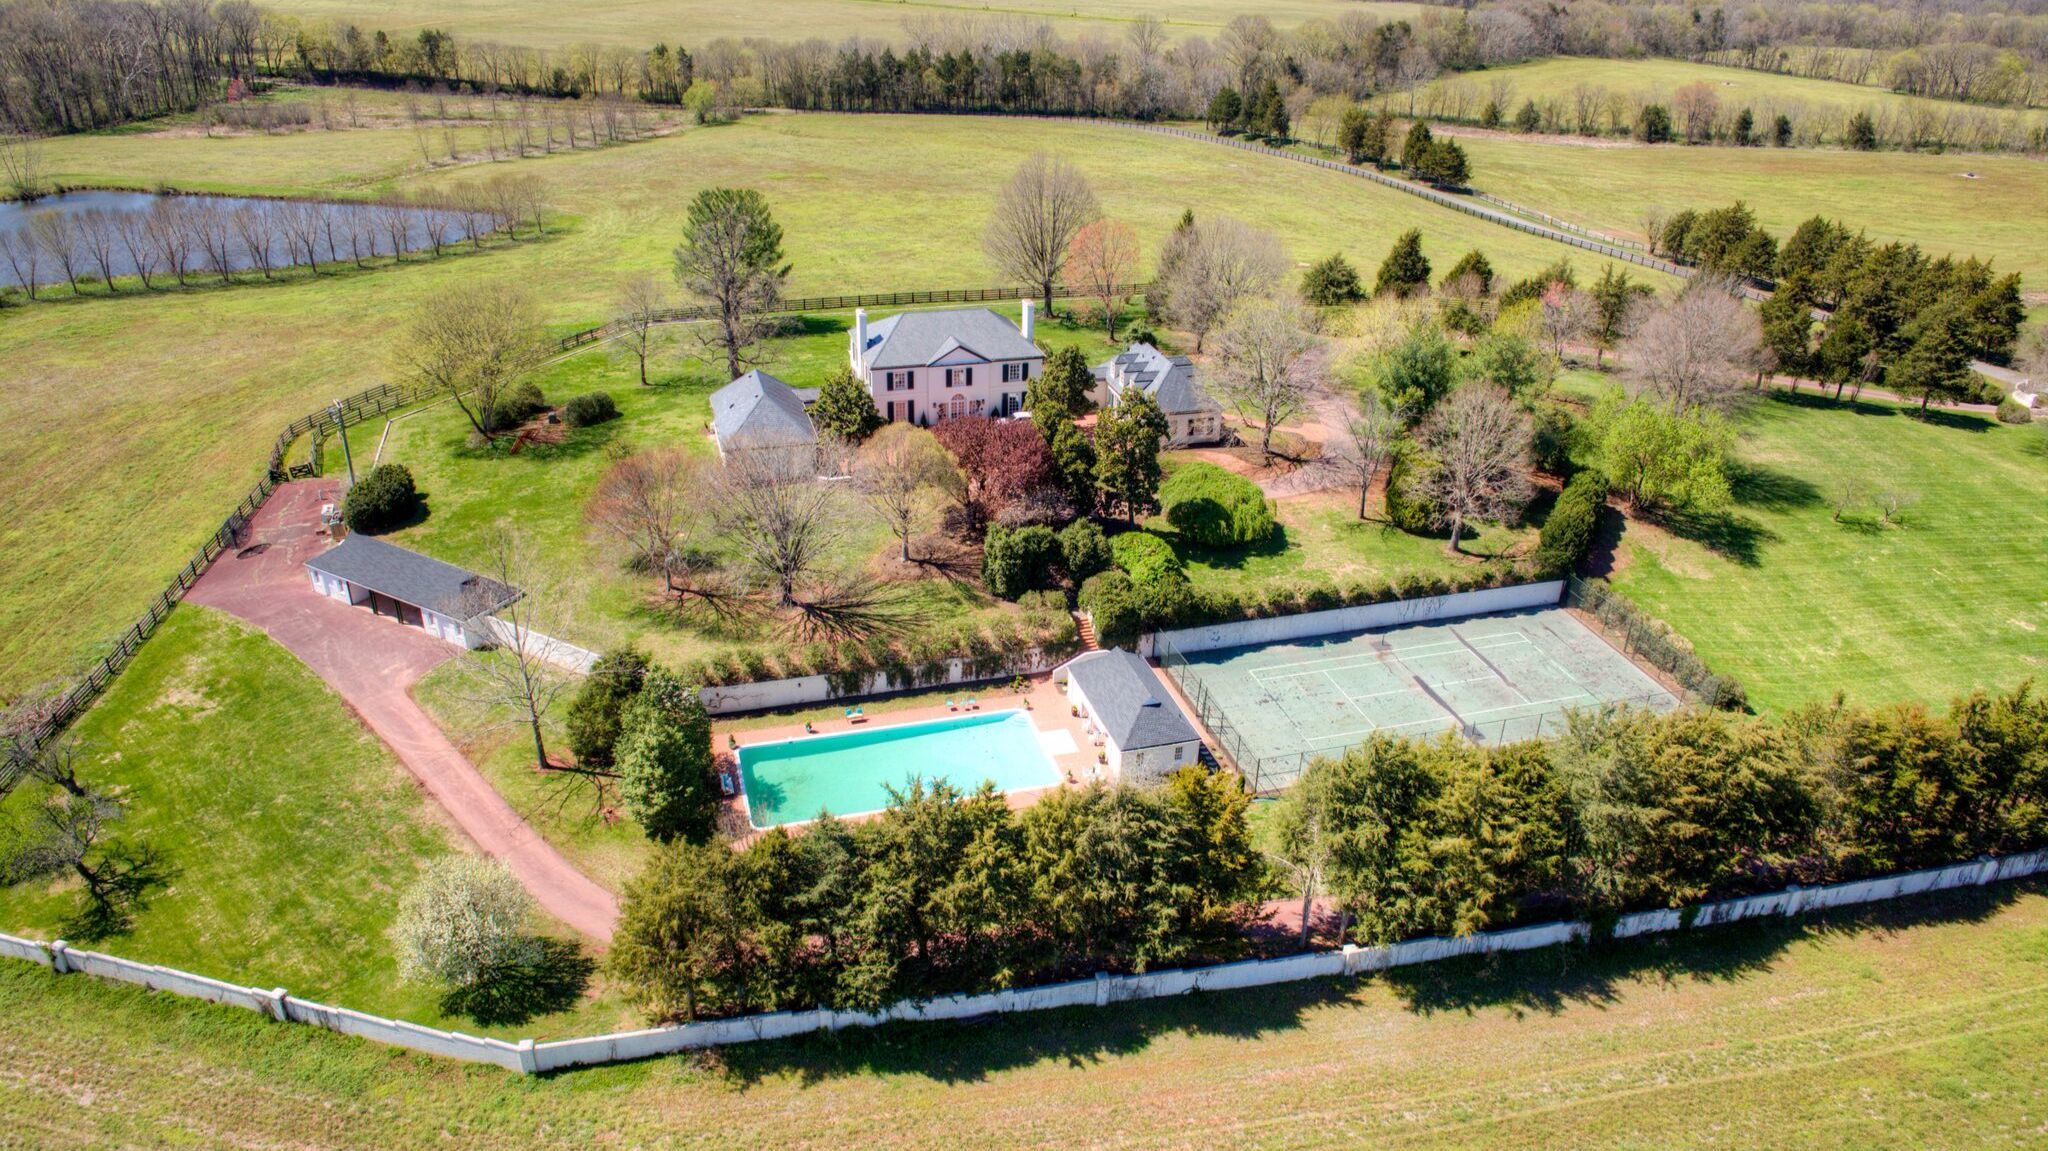 Rapidan Farm features multiple structures, a swimming pool and a tennis court on 1,700 acres in Culpeper, Va.